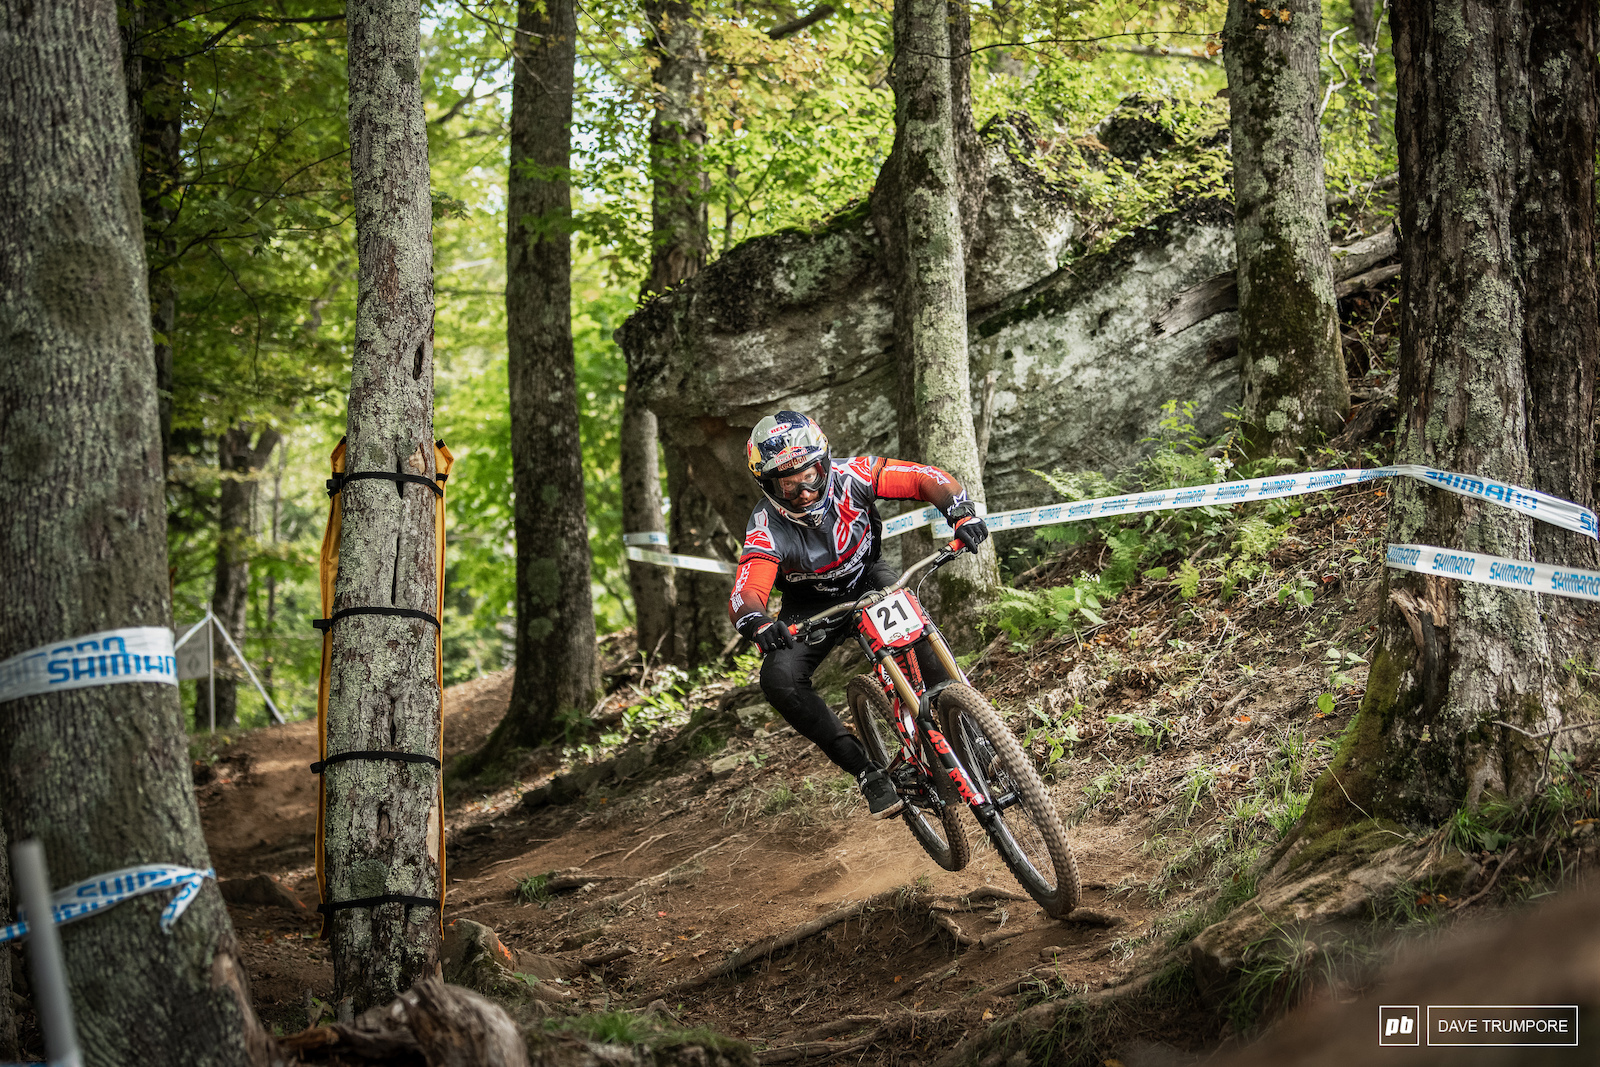 Aaron Gwin has some work to do if he wants to fight for the podium tomorrow